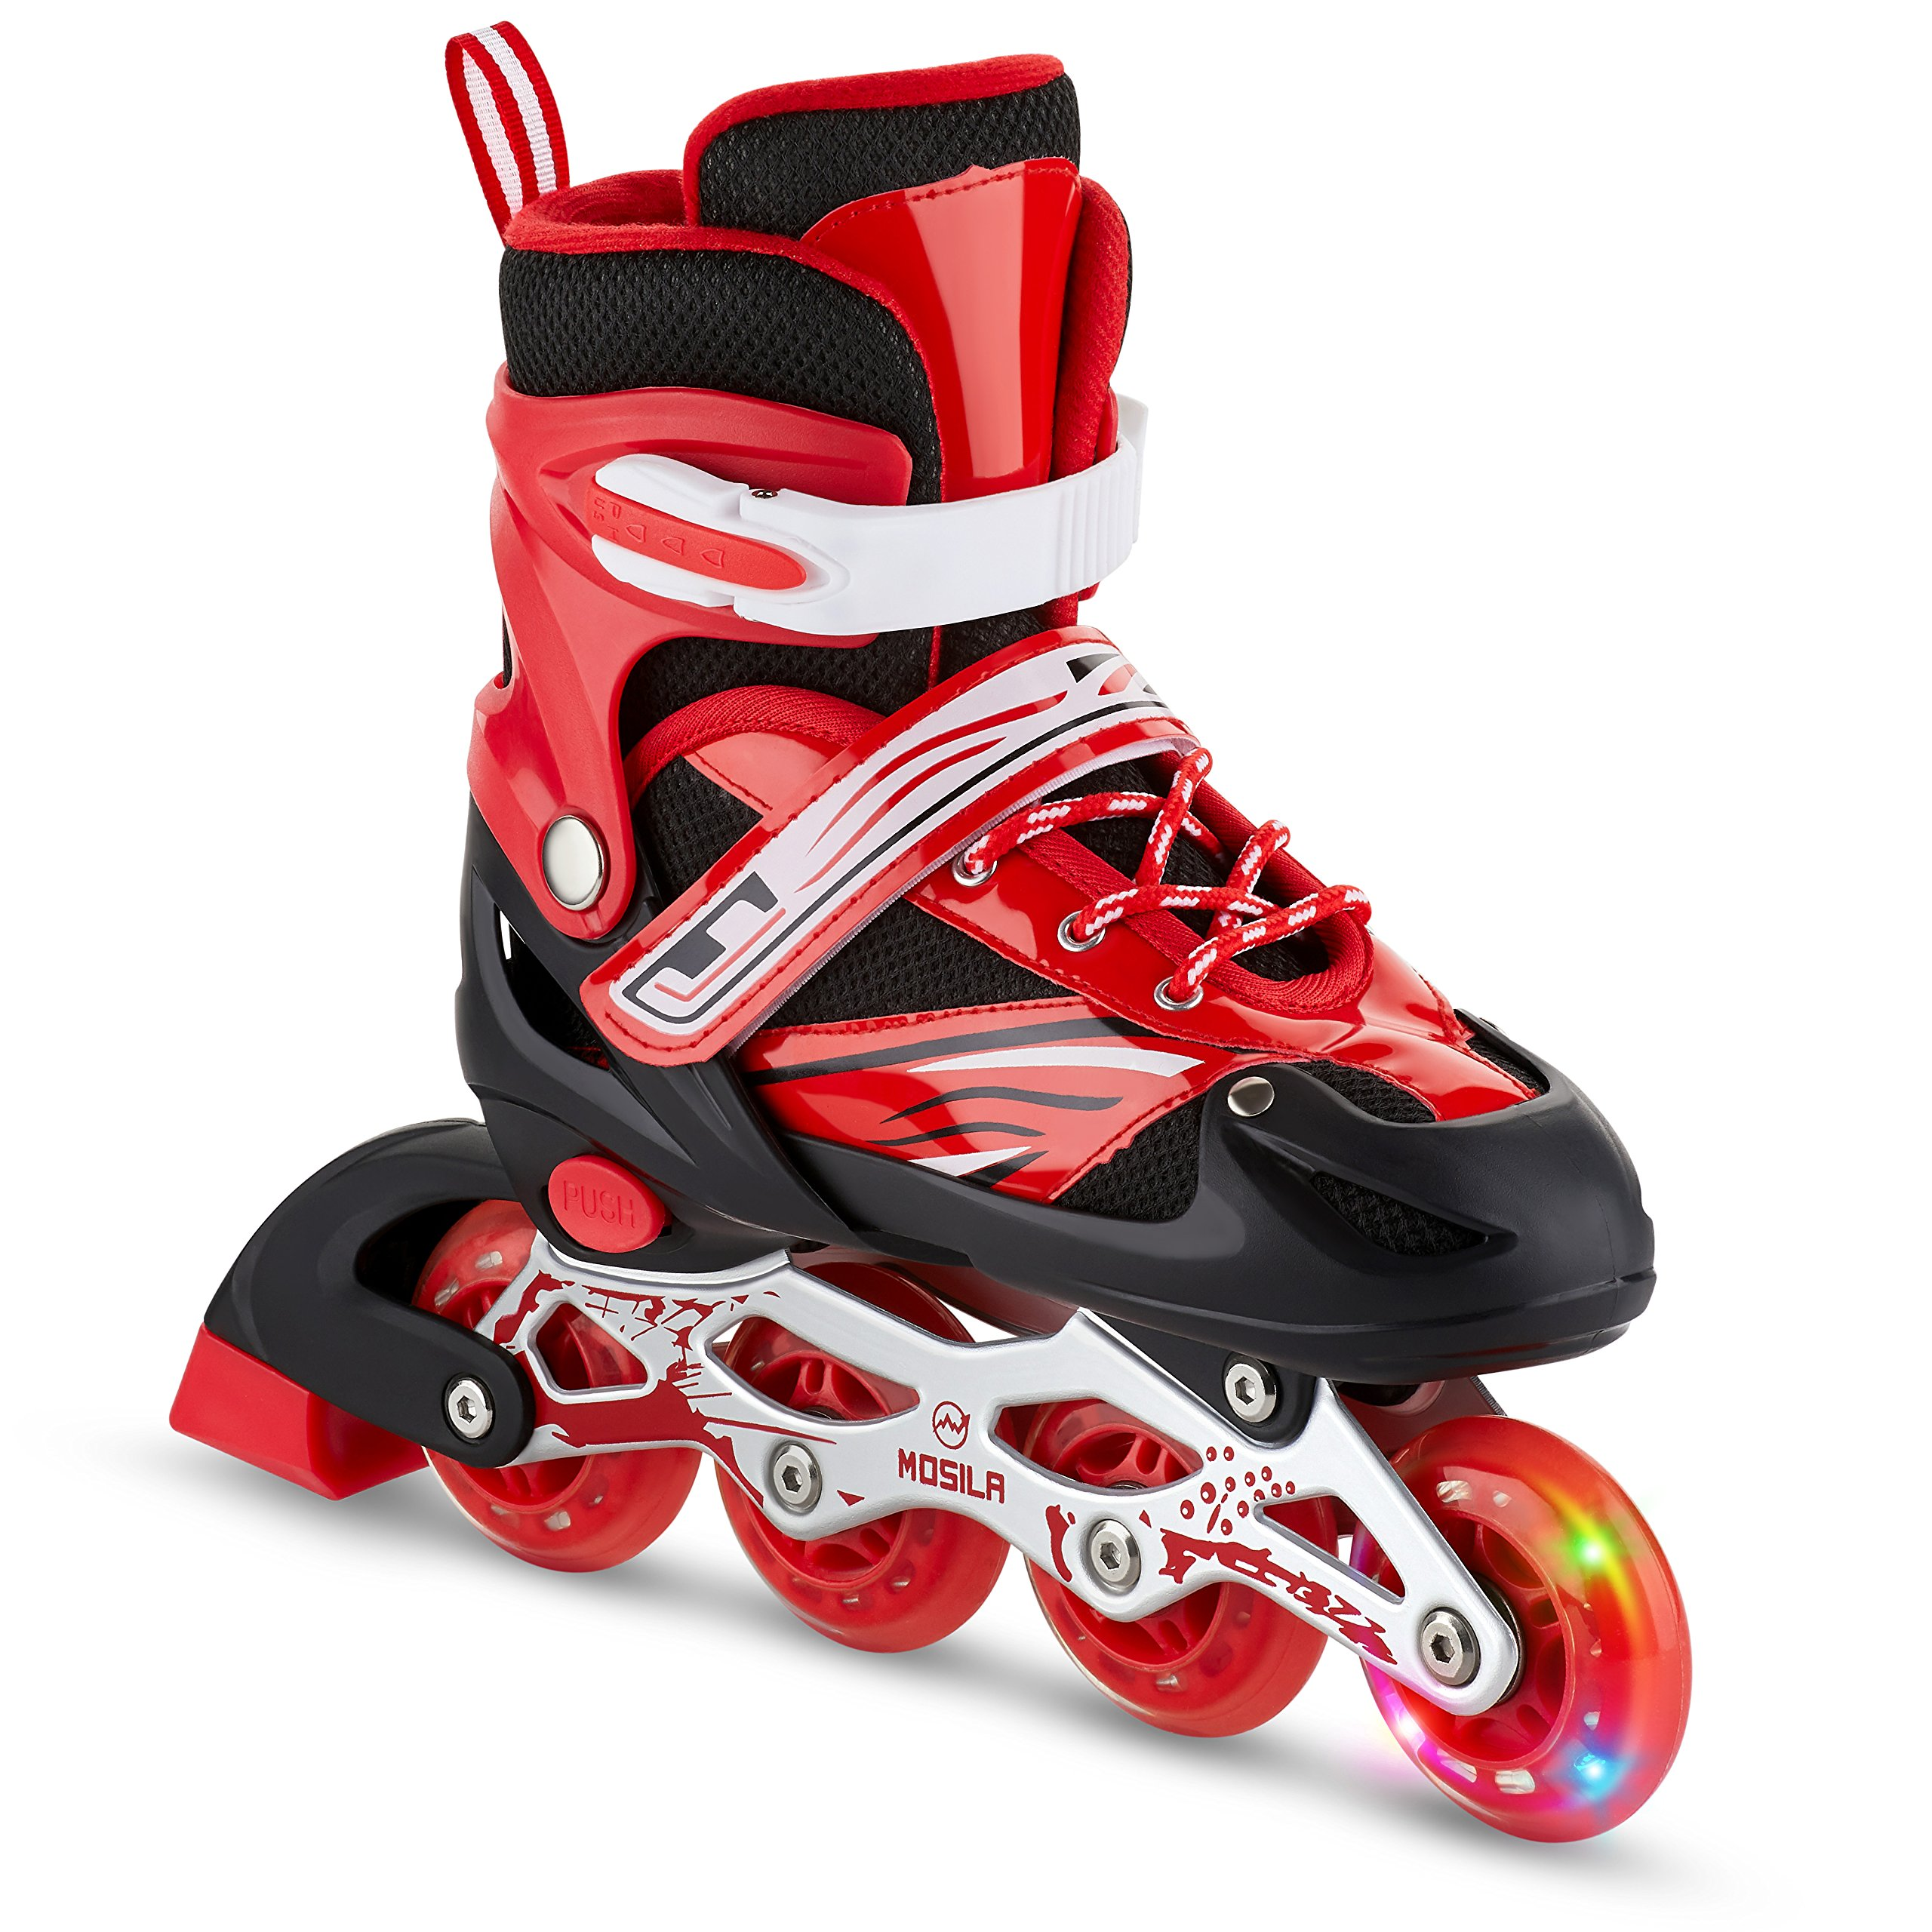 Kids Inline Skates-Top Performance Roller Skate for Girls and Boys-Easily Adjustable ,Fits US Kids Size 3-6,Expands As Your Child Grows-Light Up Front Wheel and Low Friction Wheels-by MOSILA